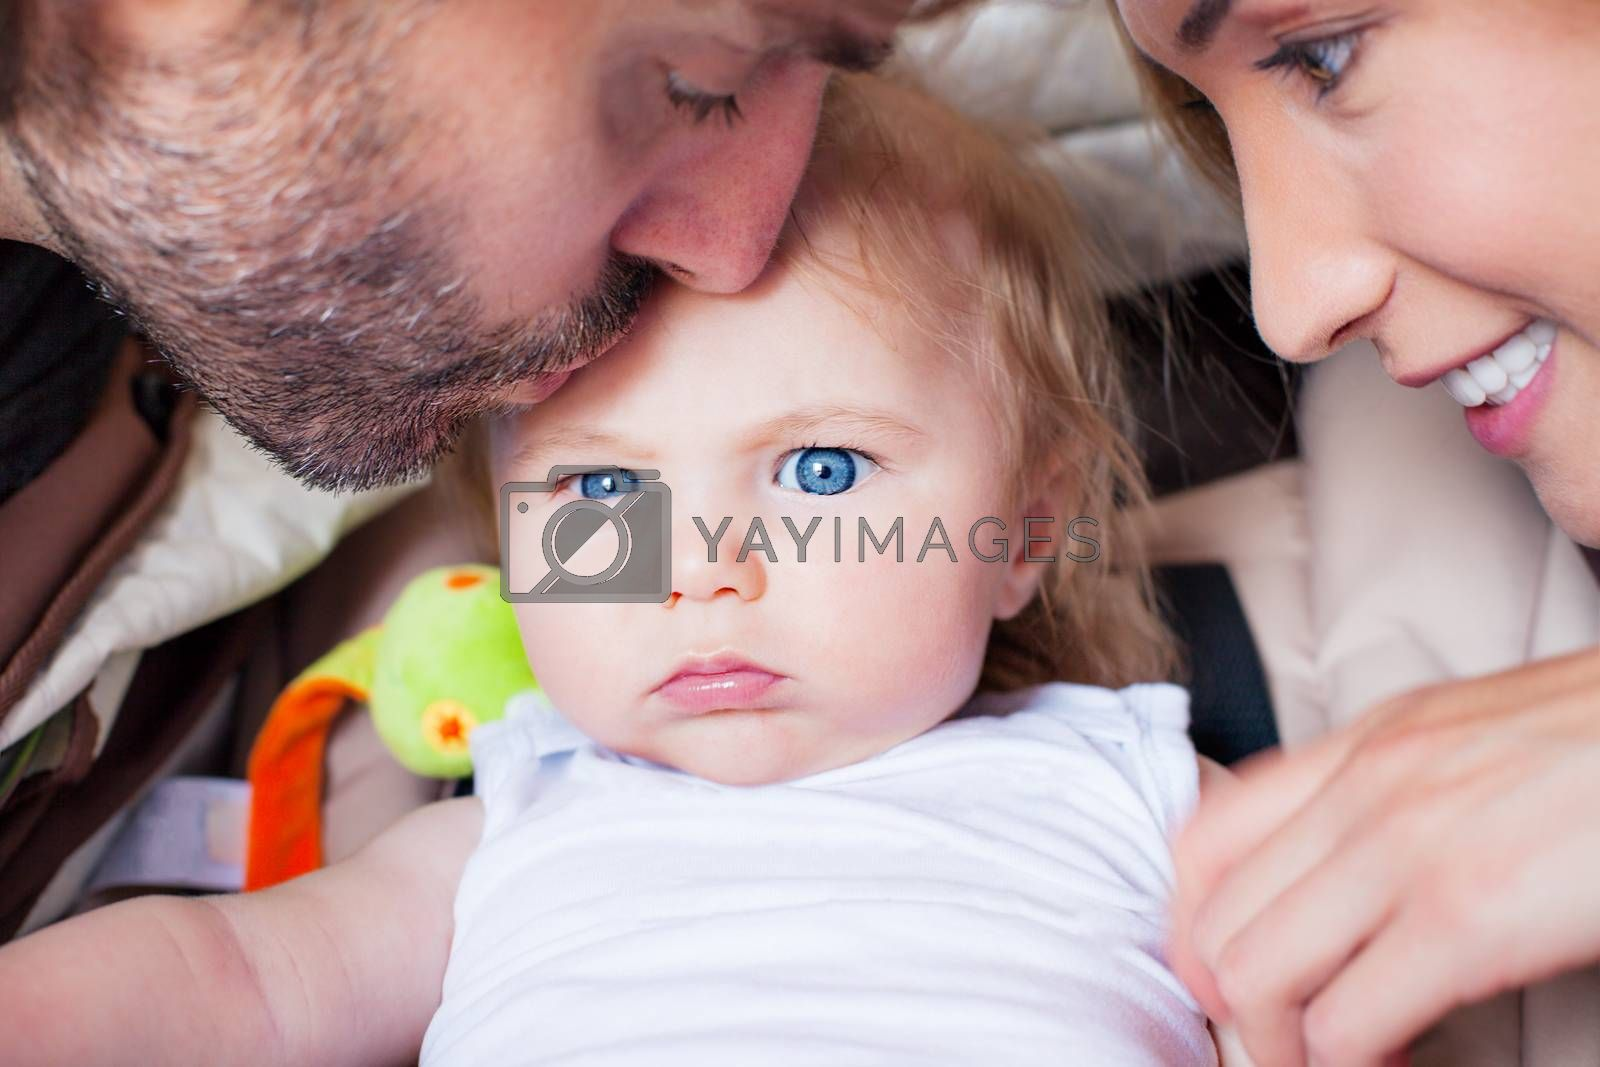 Frowning baby boy with big blue eyes is being kissed and pampered by his parents.